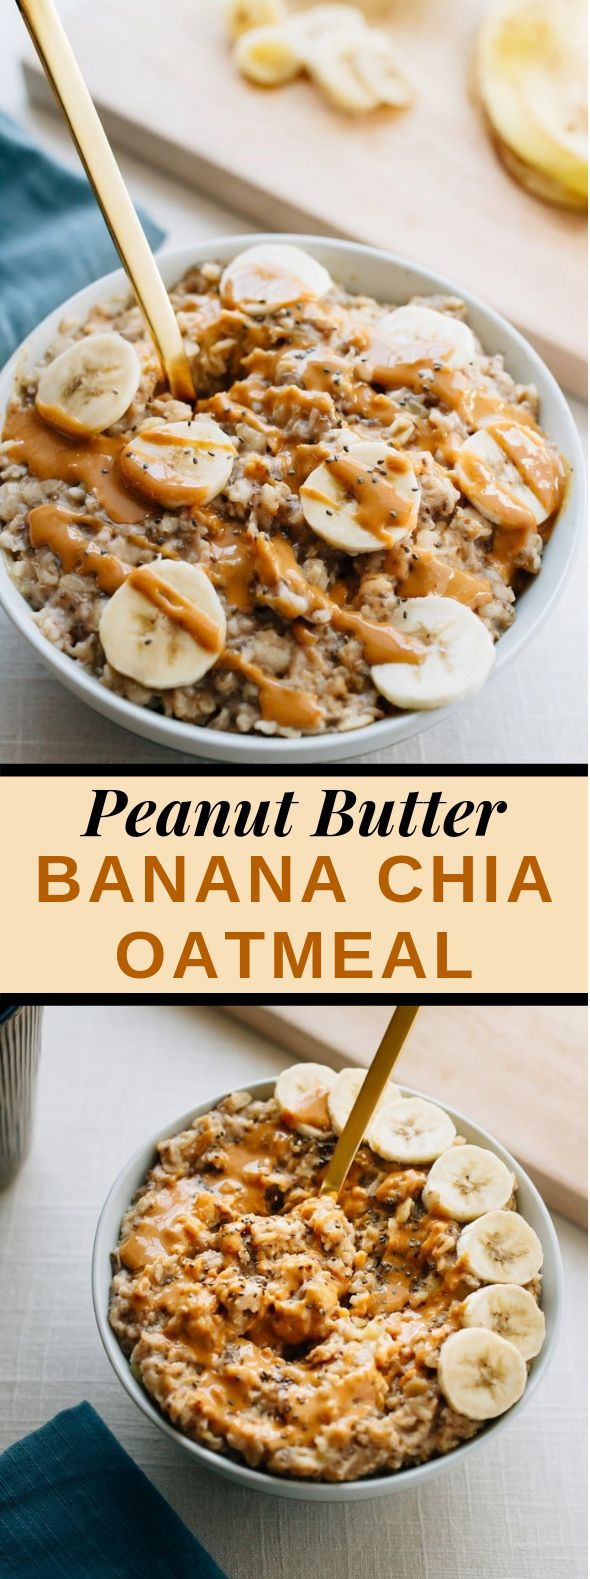 PEANUT BUTTER BANANA CHIA OATMEAL #healthy #breakfast